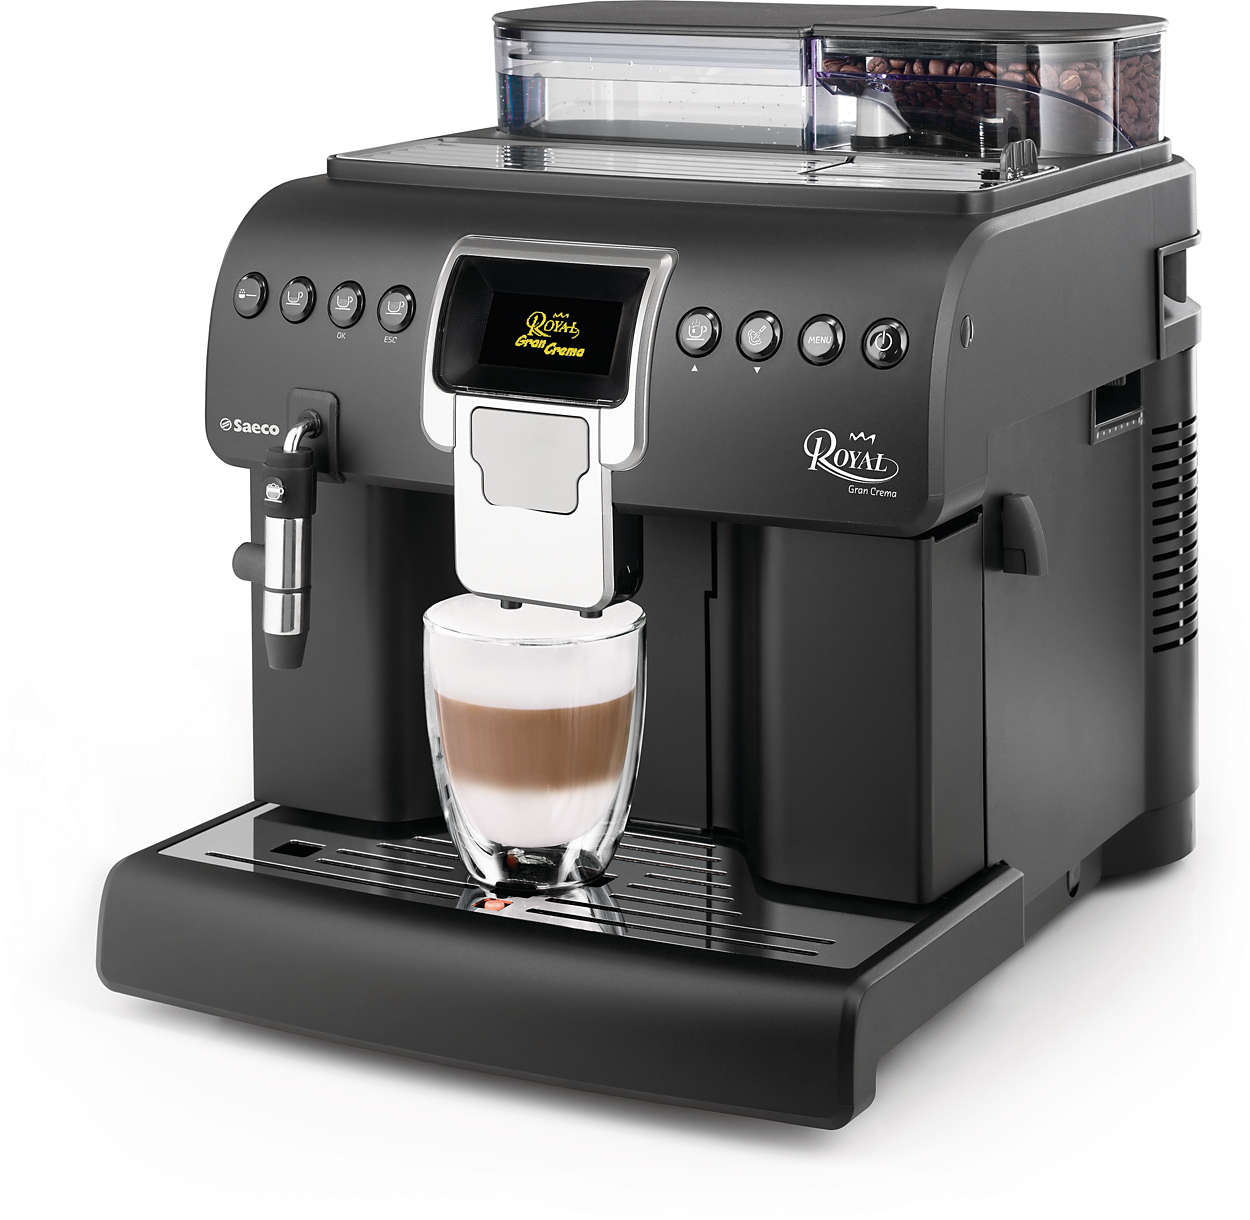 Saeco Automatic Coffee Machines - South Africa s Brand History and Product Reviews